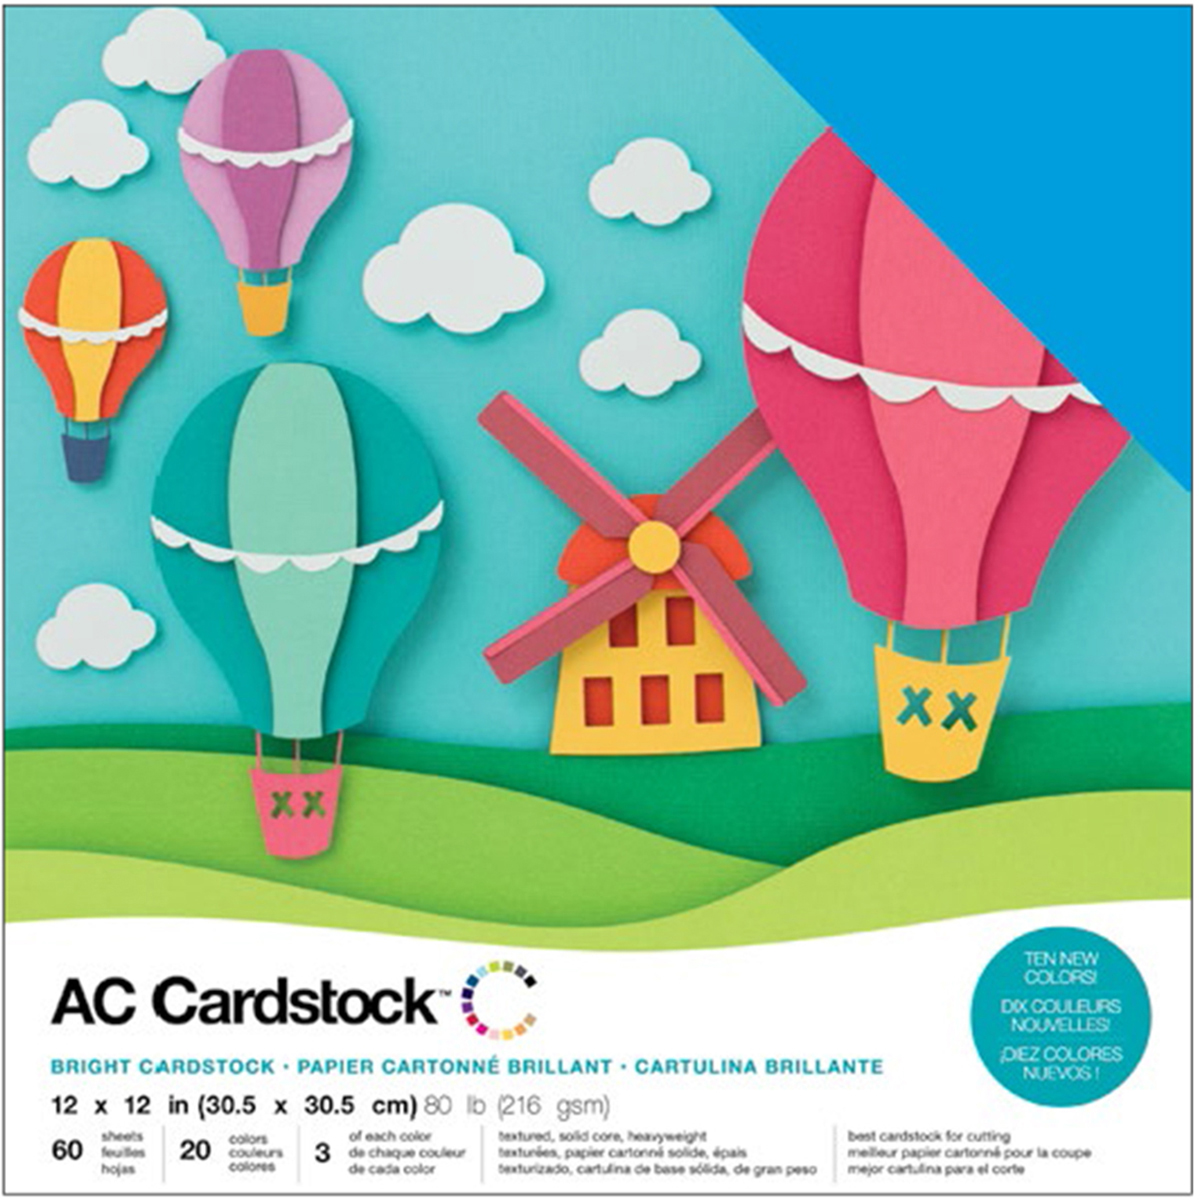 AC CARDSTOCK 12X12 Textured Solid Core - 60 Sheets - 20 Colors - 3 of each - Brights Collection